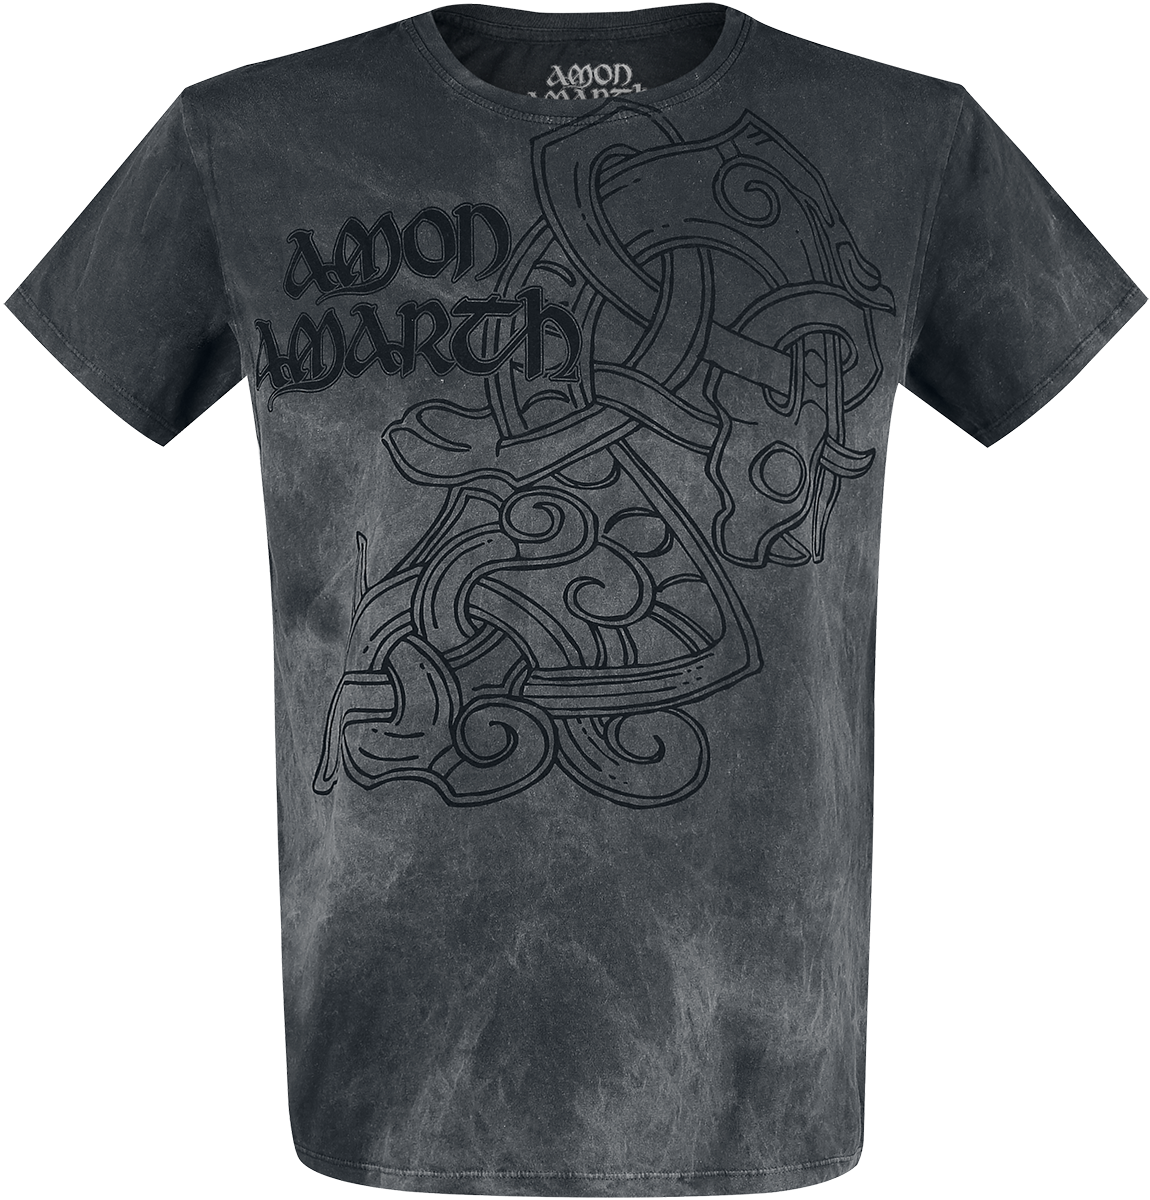 Amon Amarth - Pure Viking - T-Shirt - charcoal